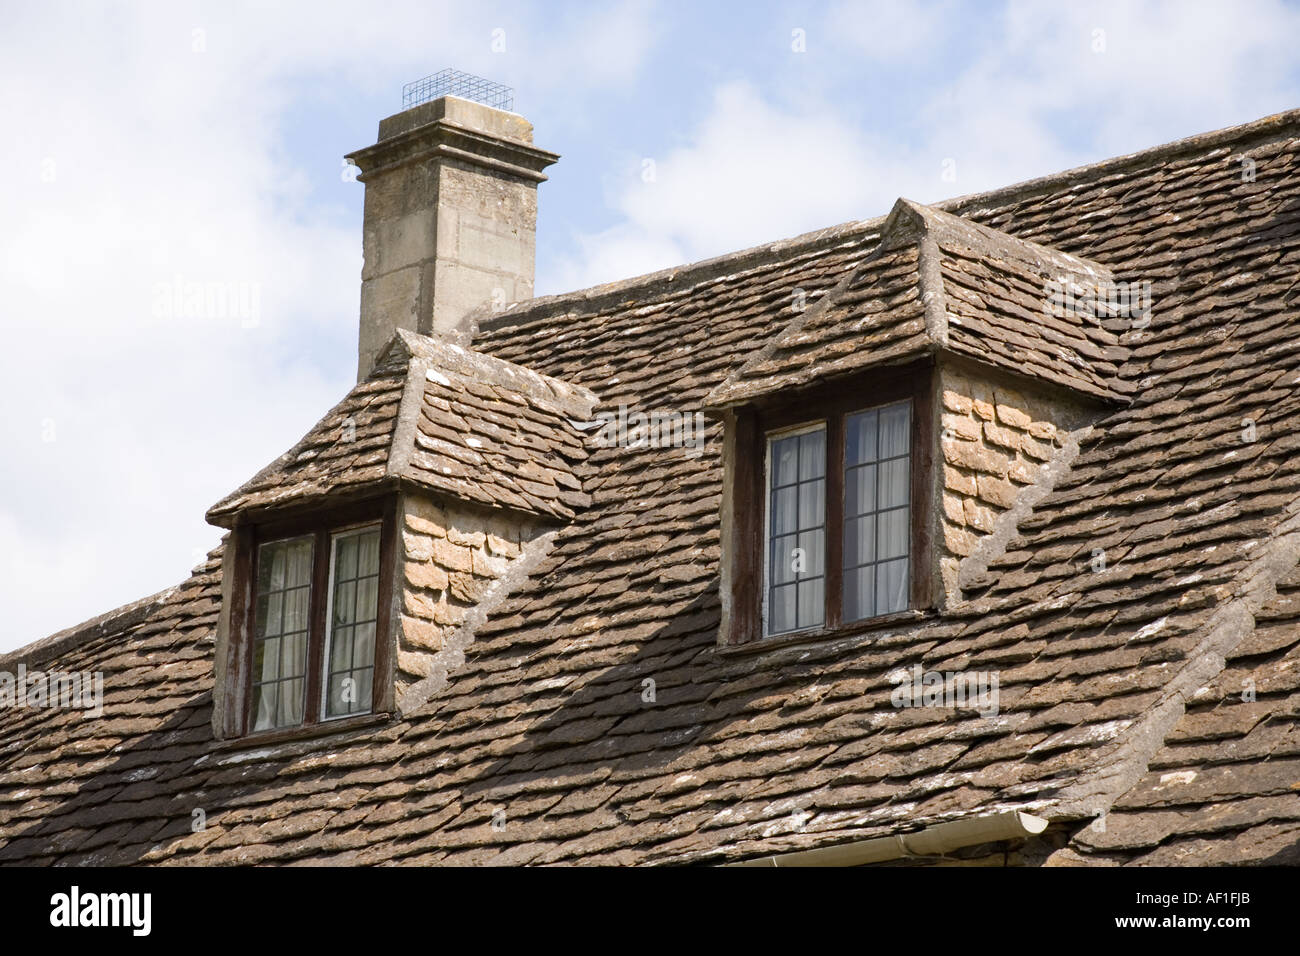 Dormer Windows In A Cotswold Stone Roof On A Cottage At